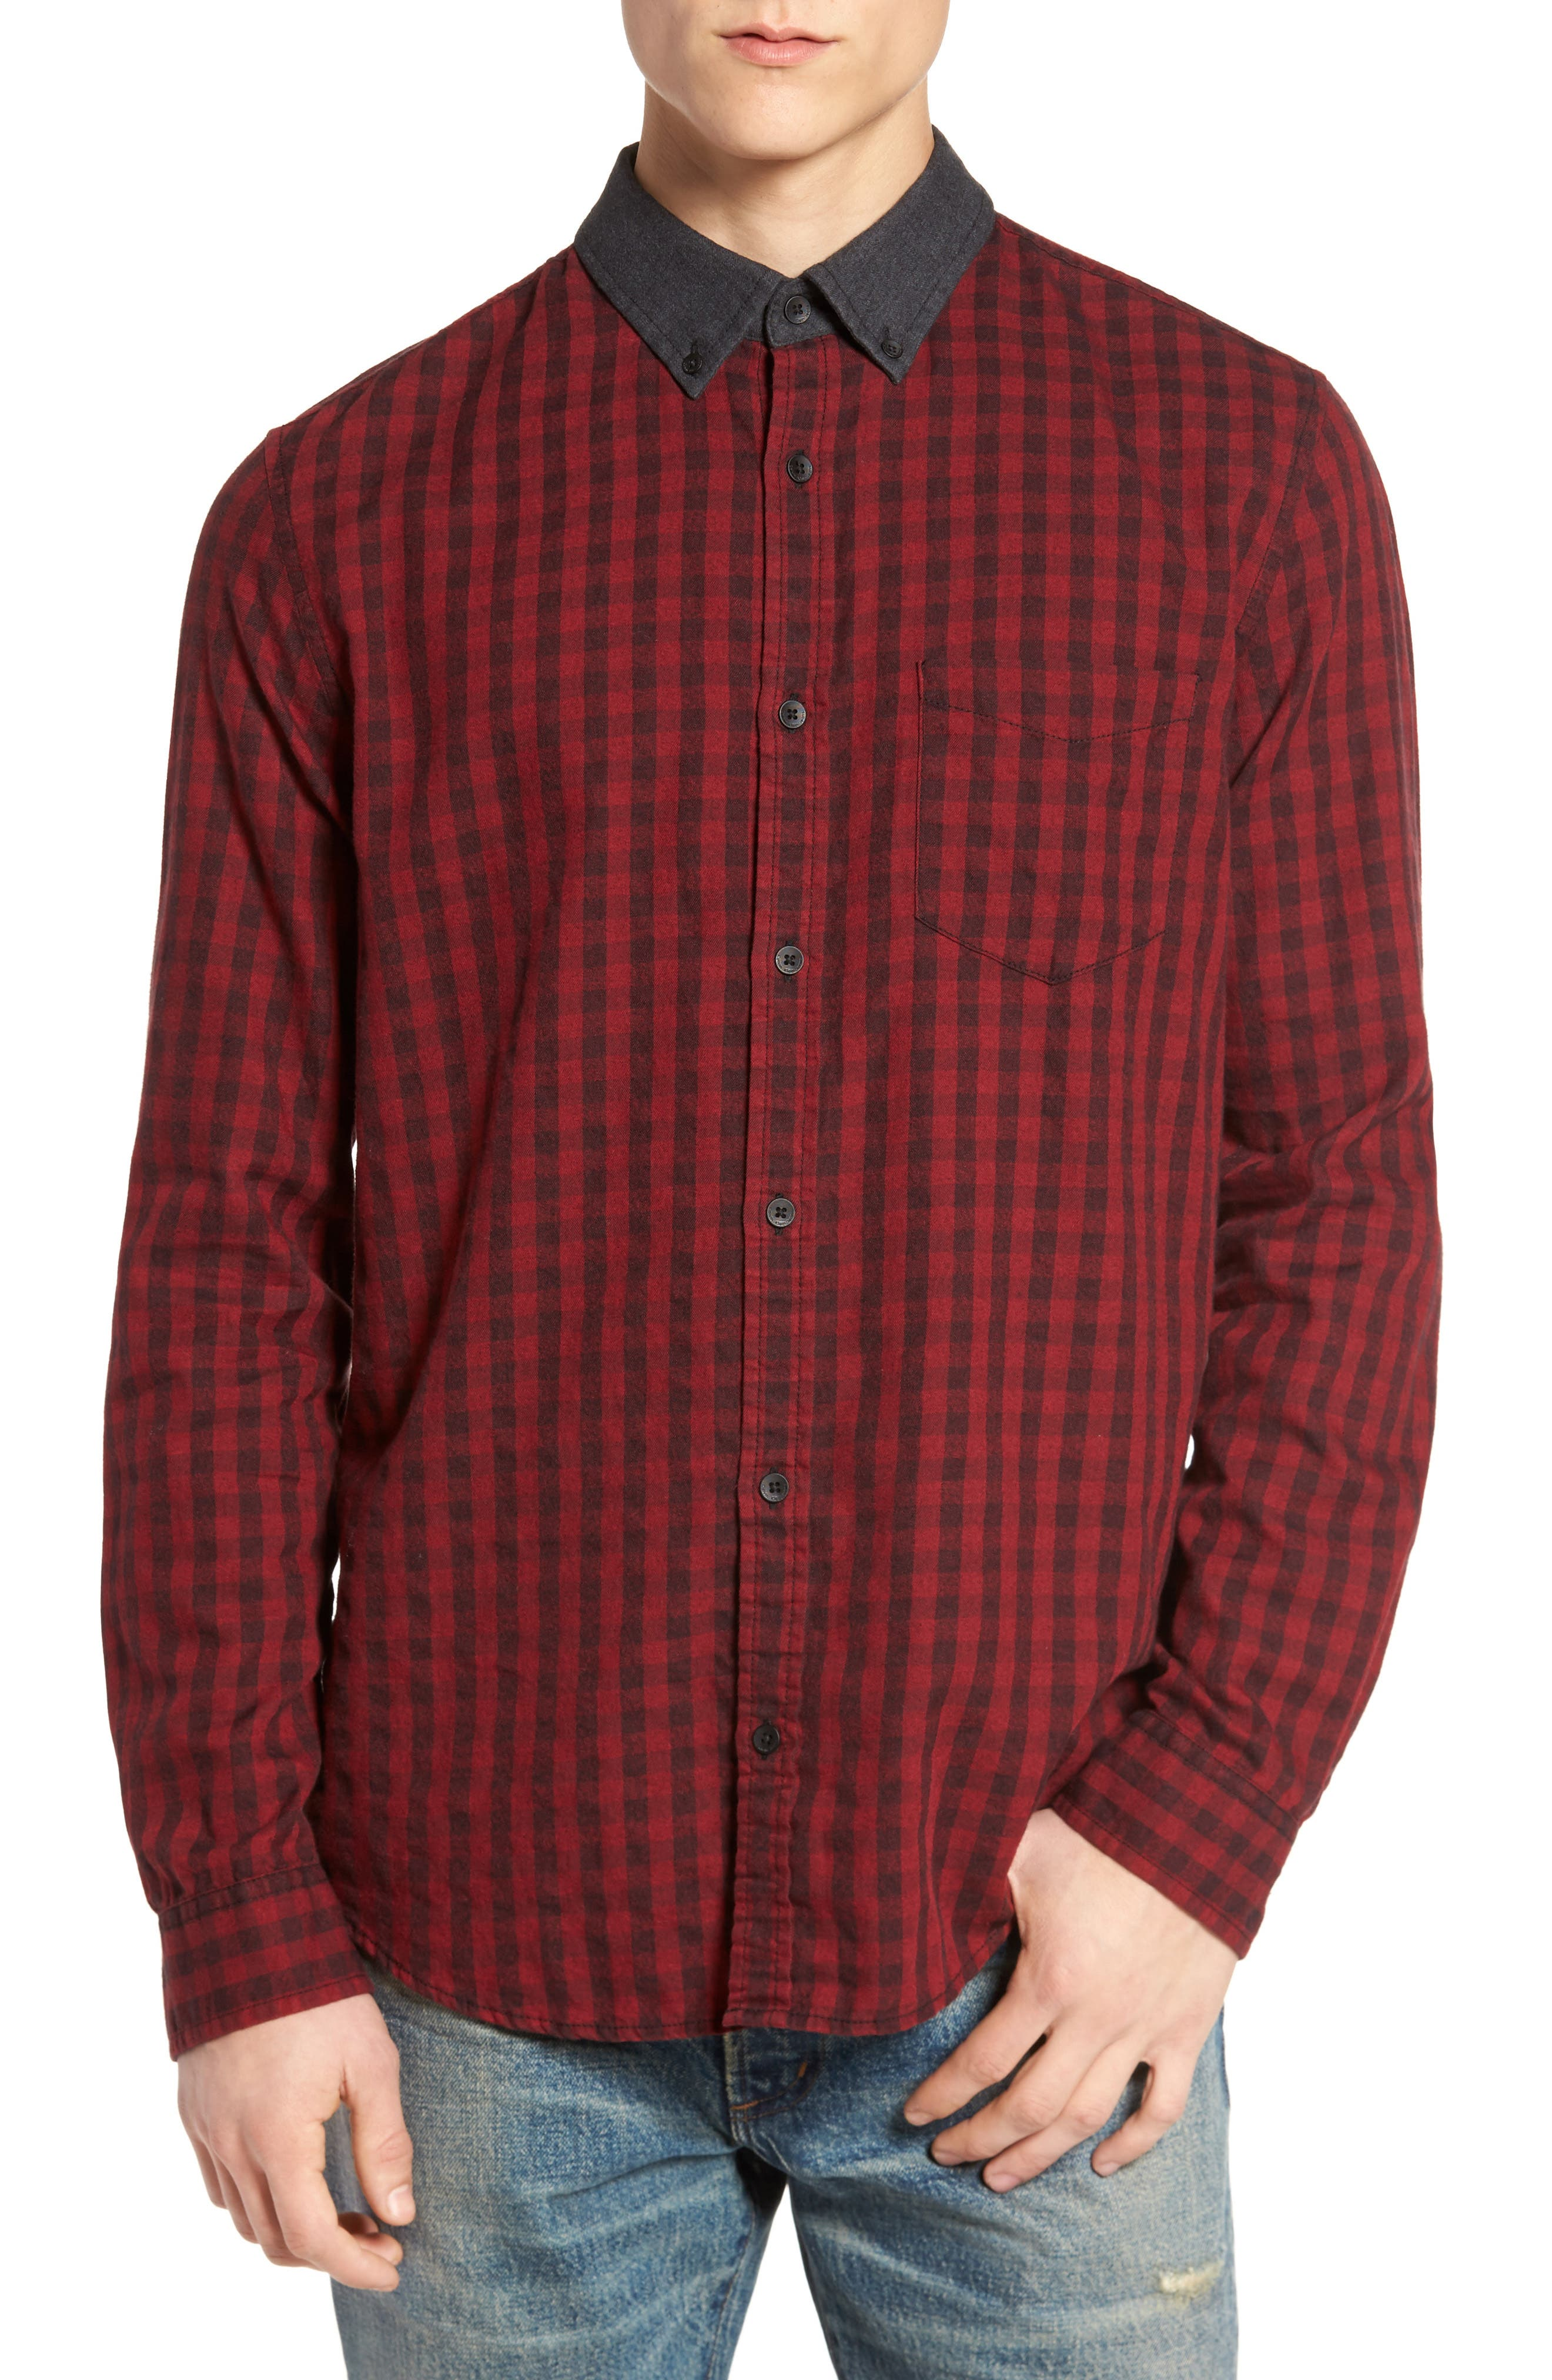 Barn Flannel Shirt,                             Main thumbnail 1, color,                             621